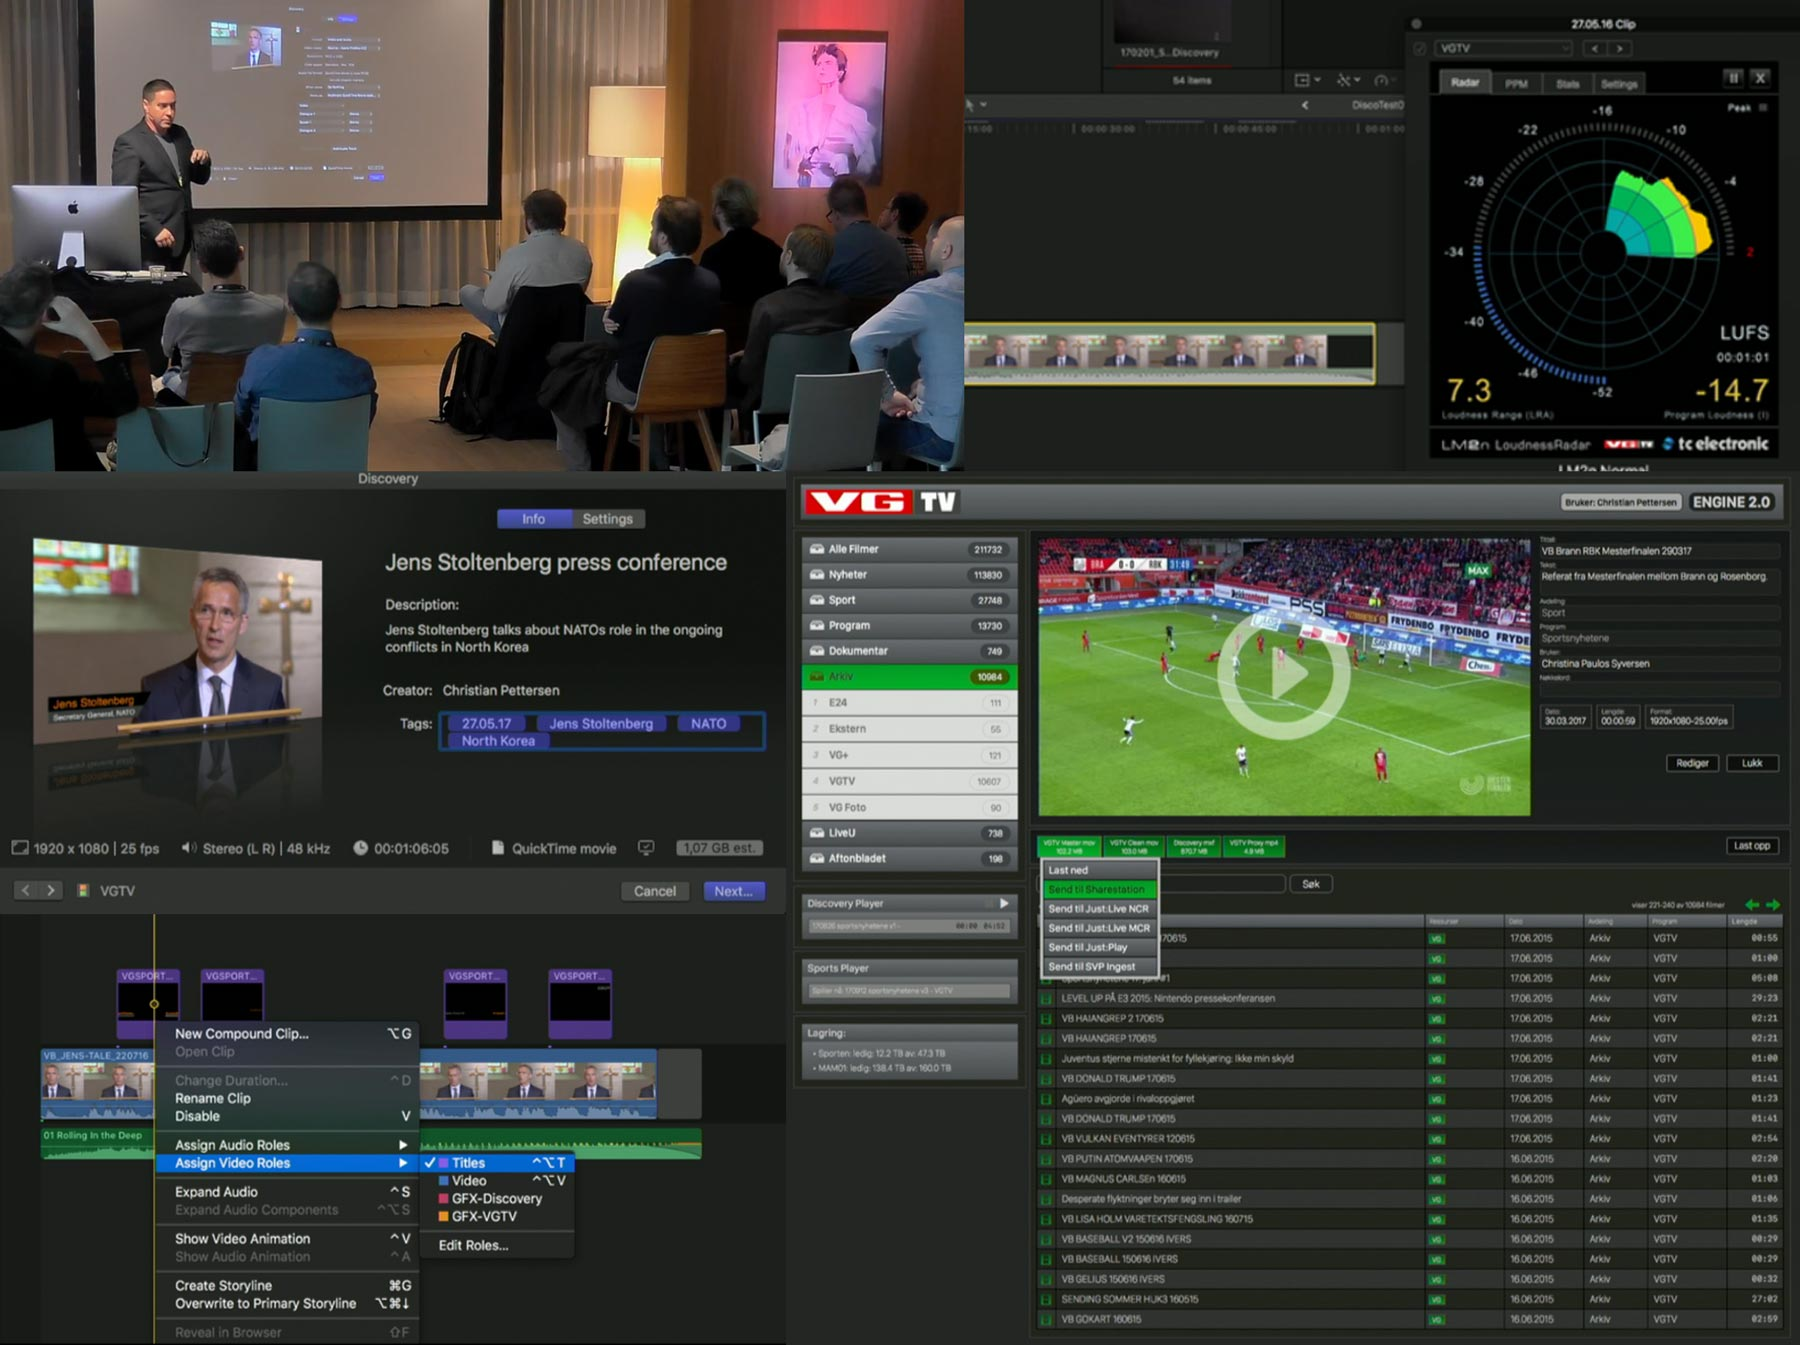 fcpx world vgtv 06